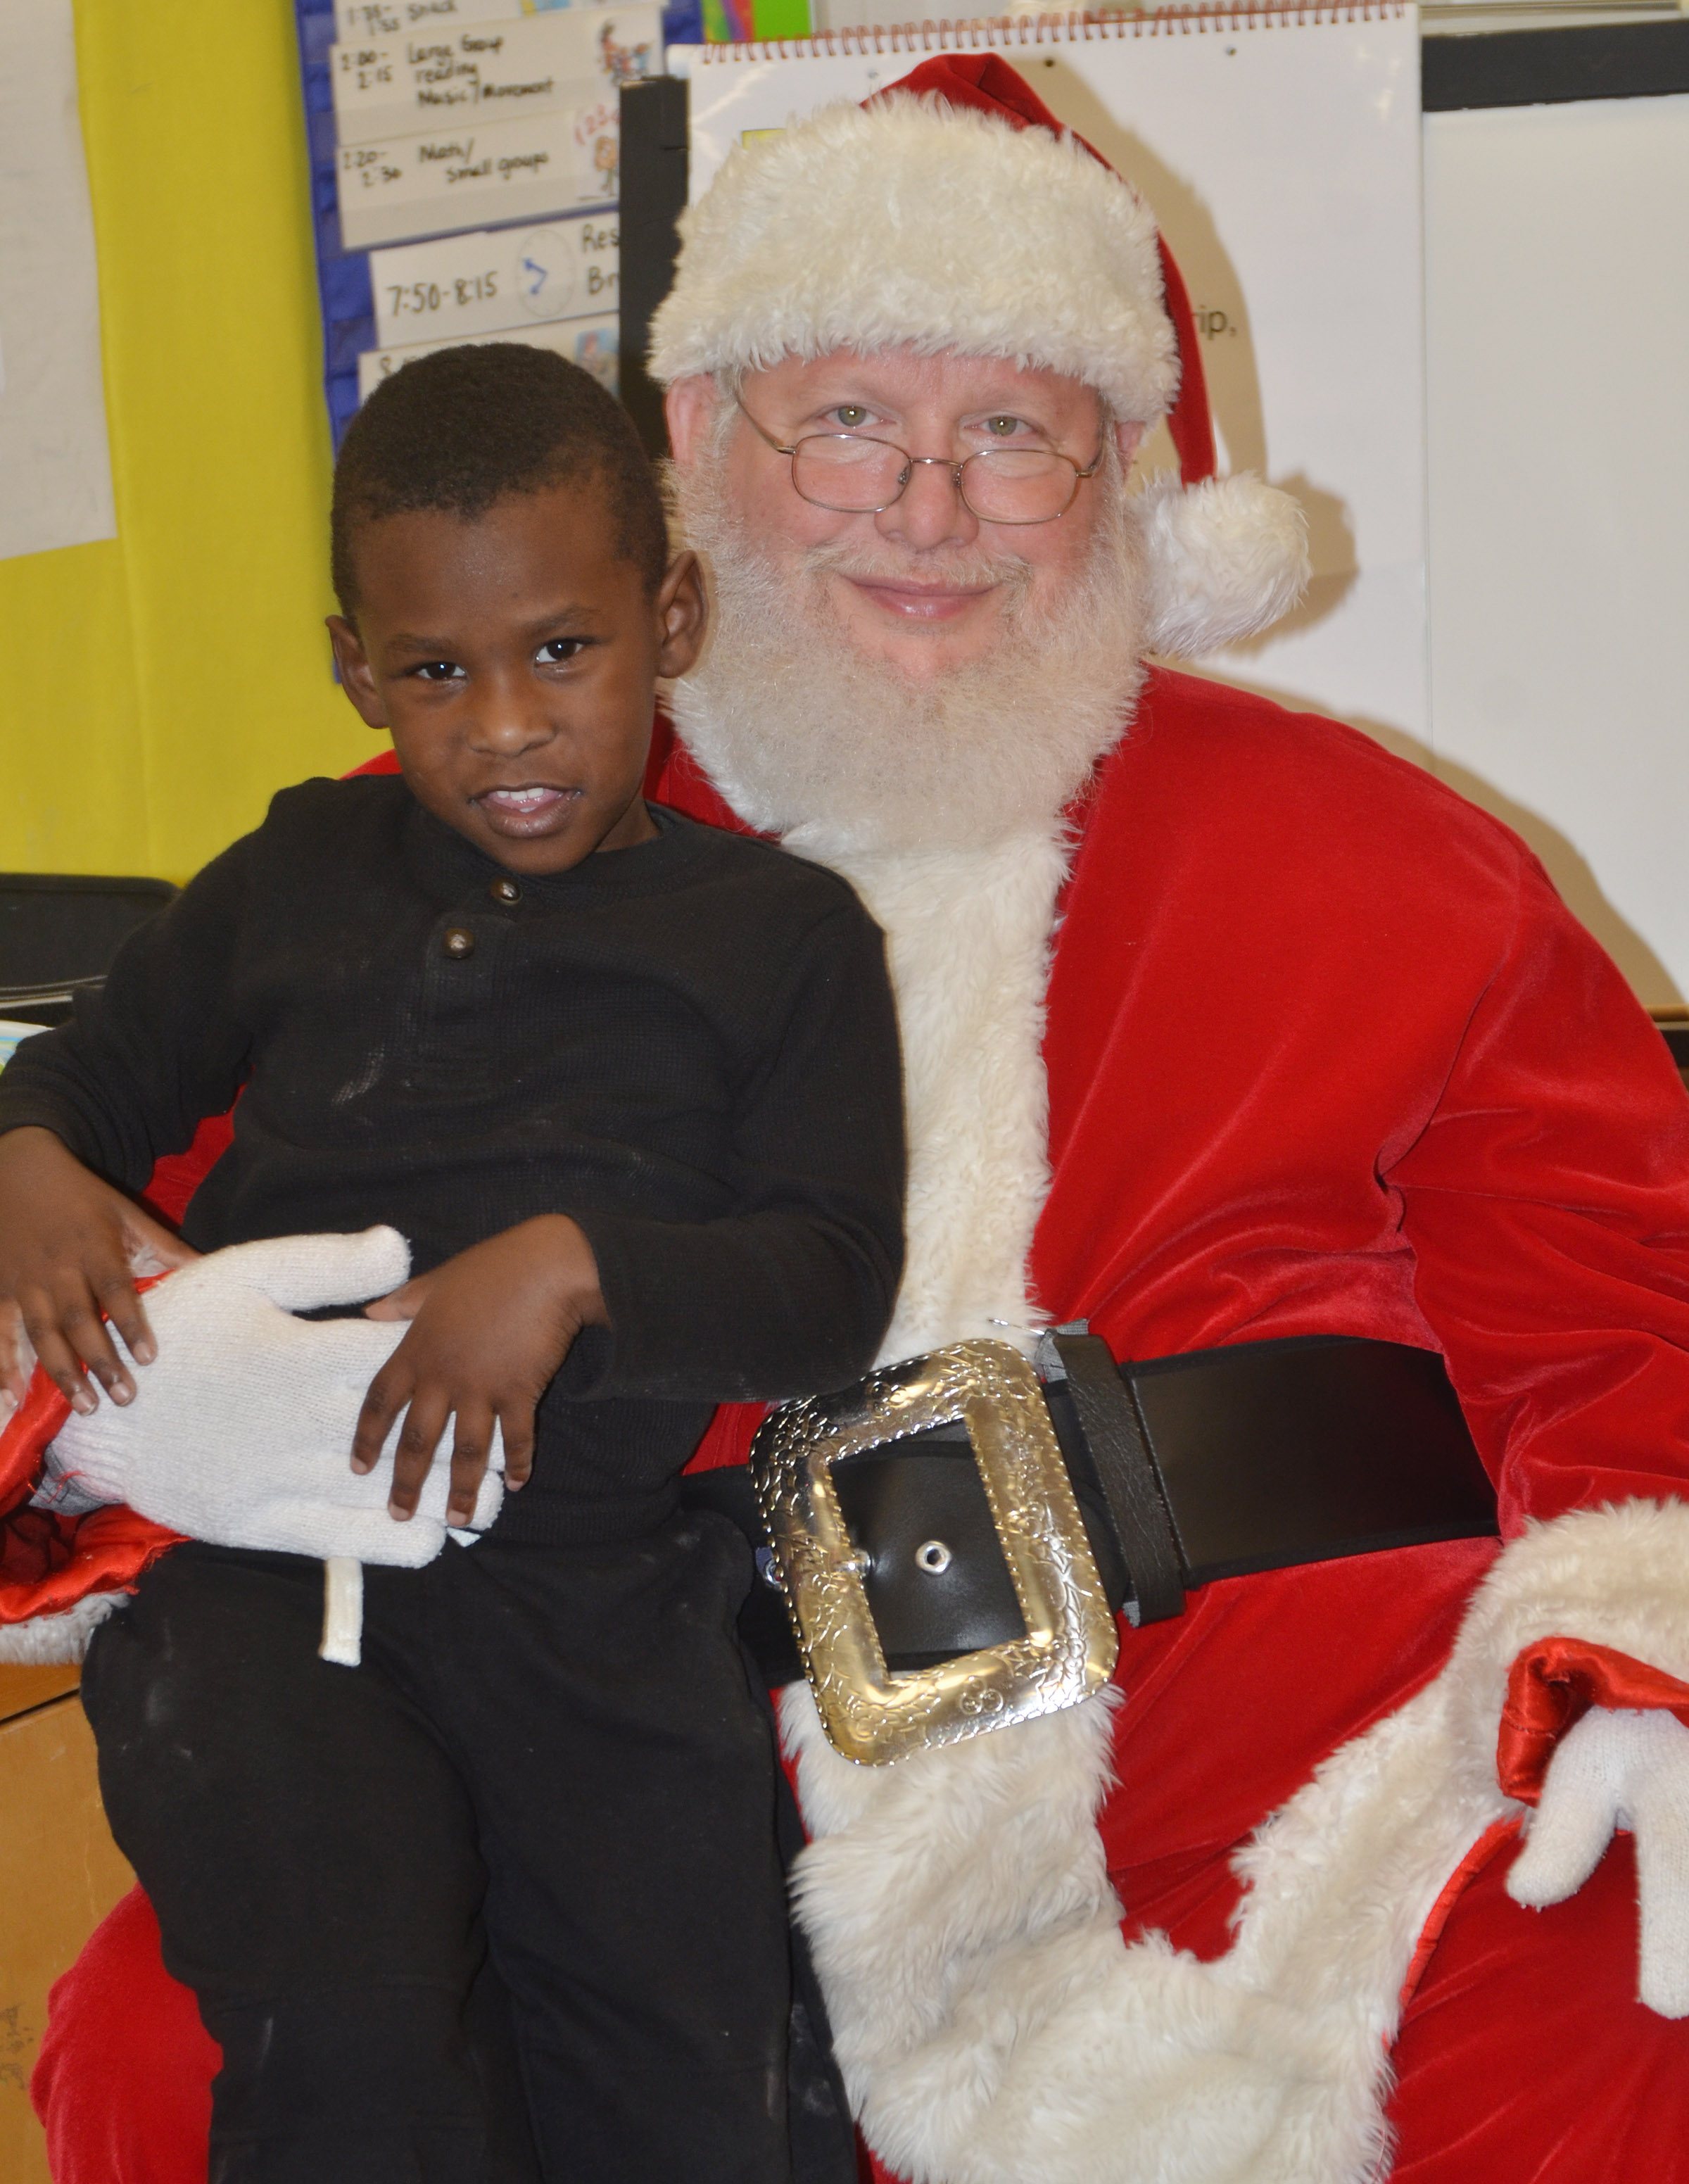 CES preschool student Trezdyn Tonge smiles for a photo with Santa.